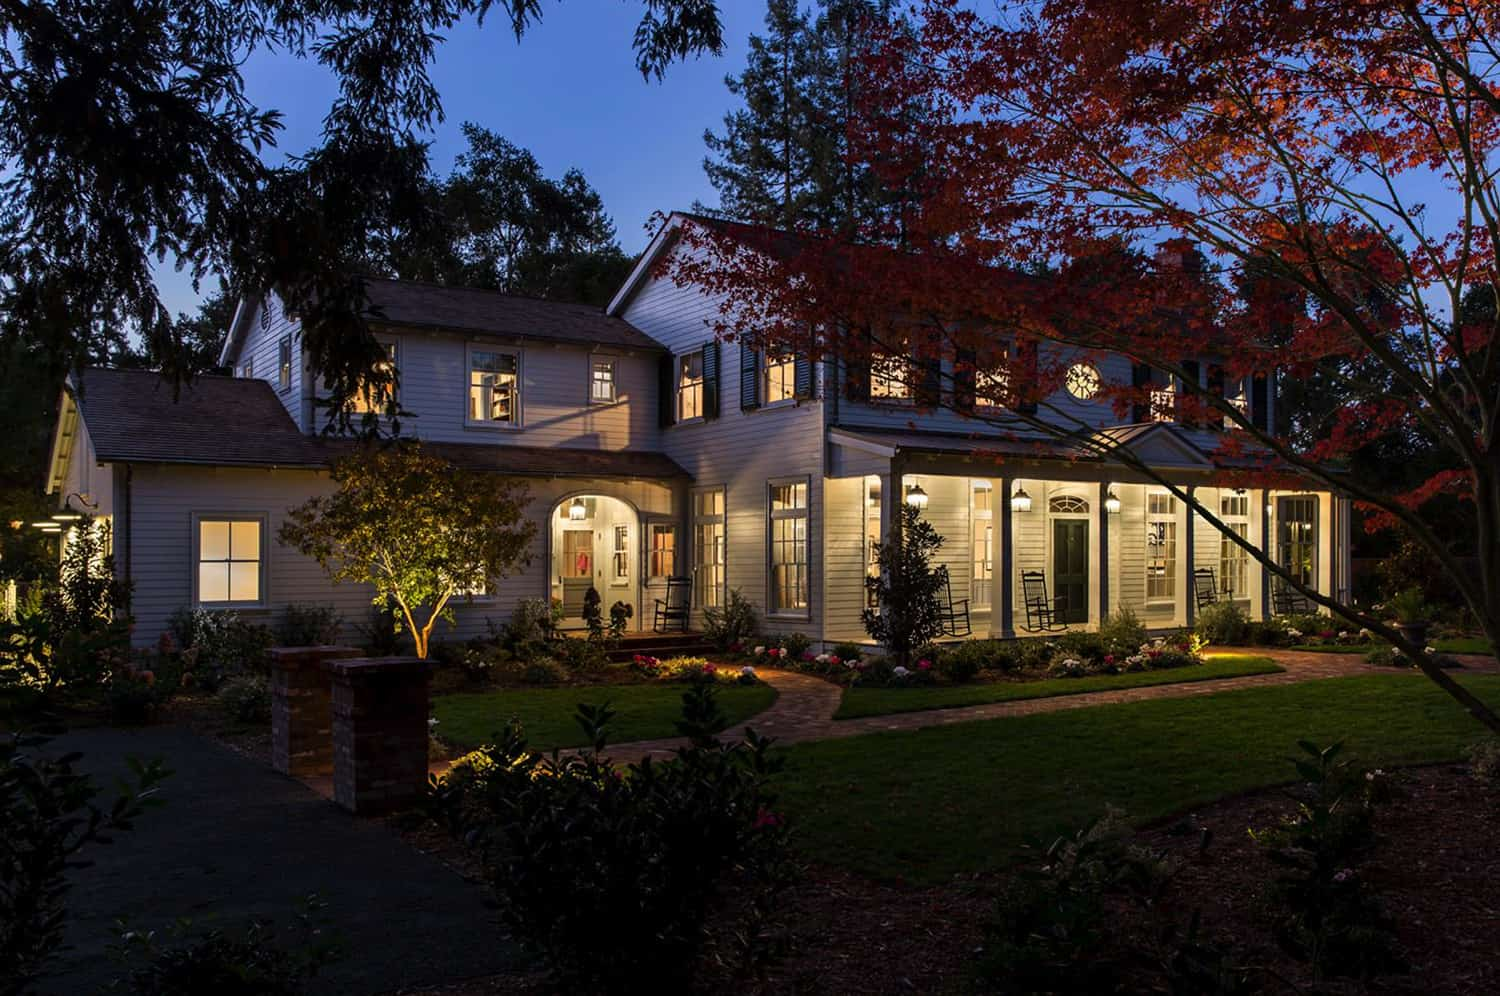 front-facade-and-yard-with-brick-paved-walkways-at-night-traditional-house-exterior